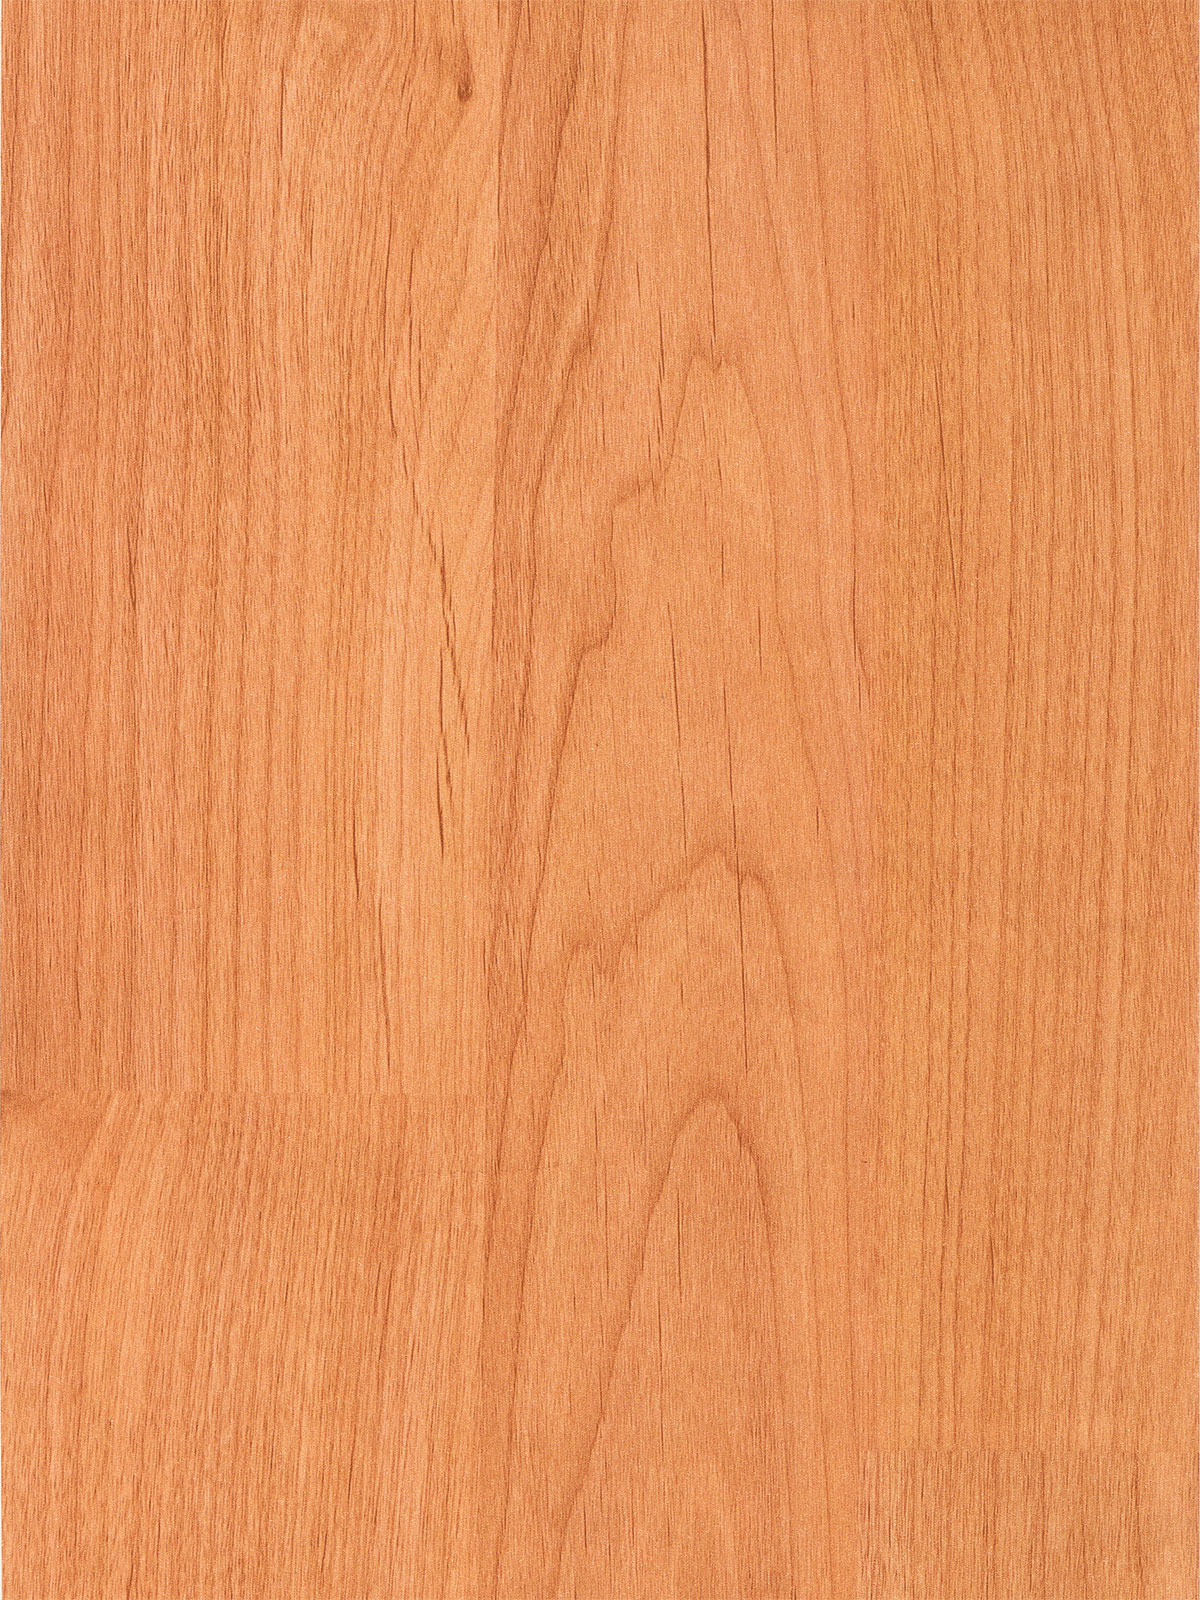 Welcome to tiger floor manufacturer of laminate flooring for Laminate flooring manufacturers